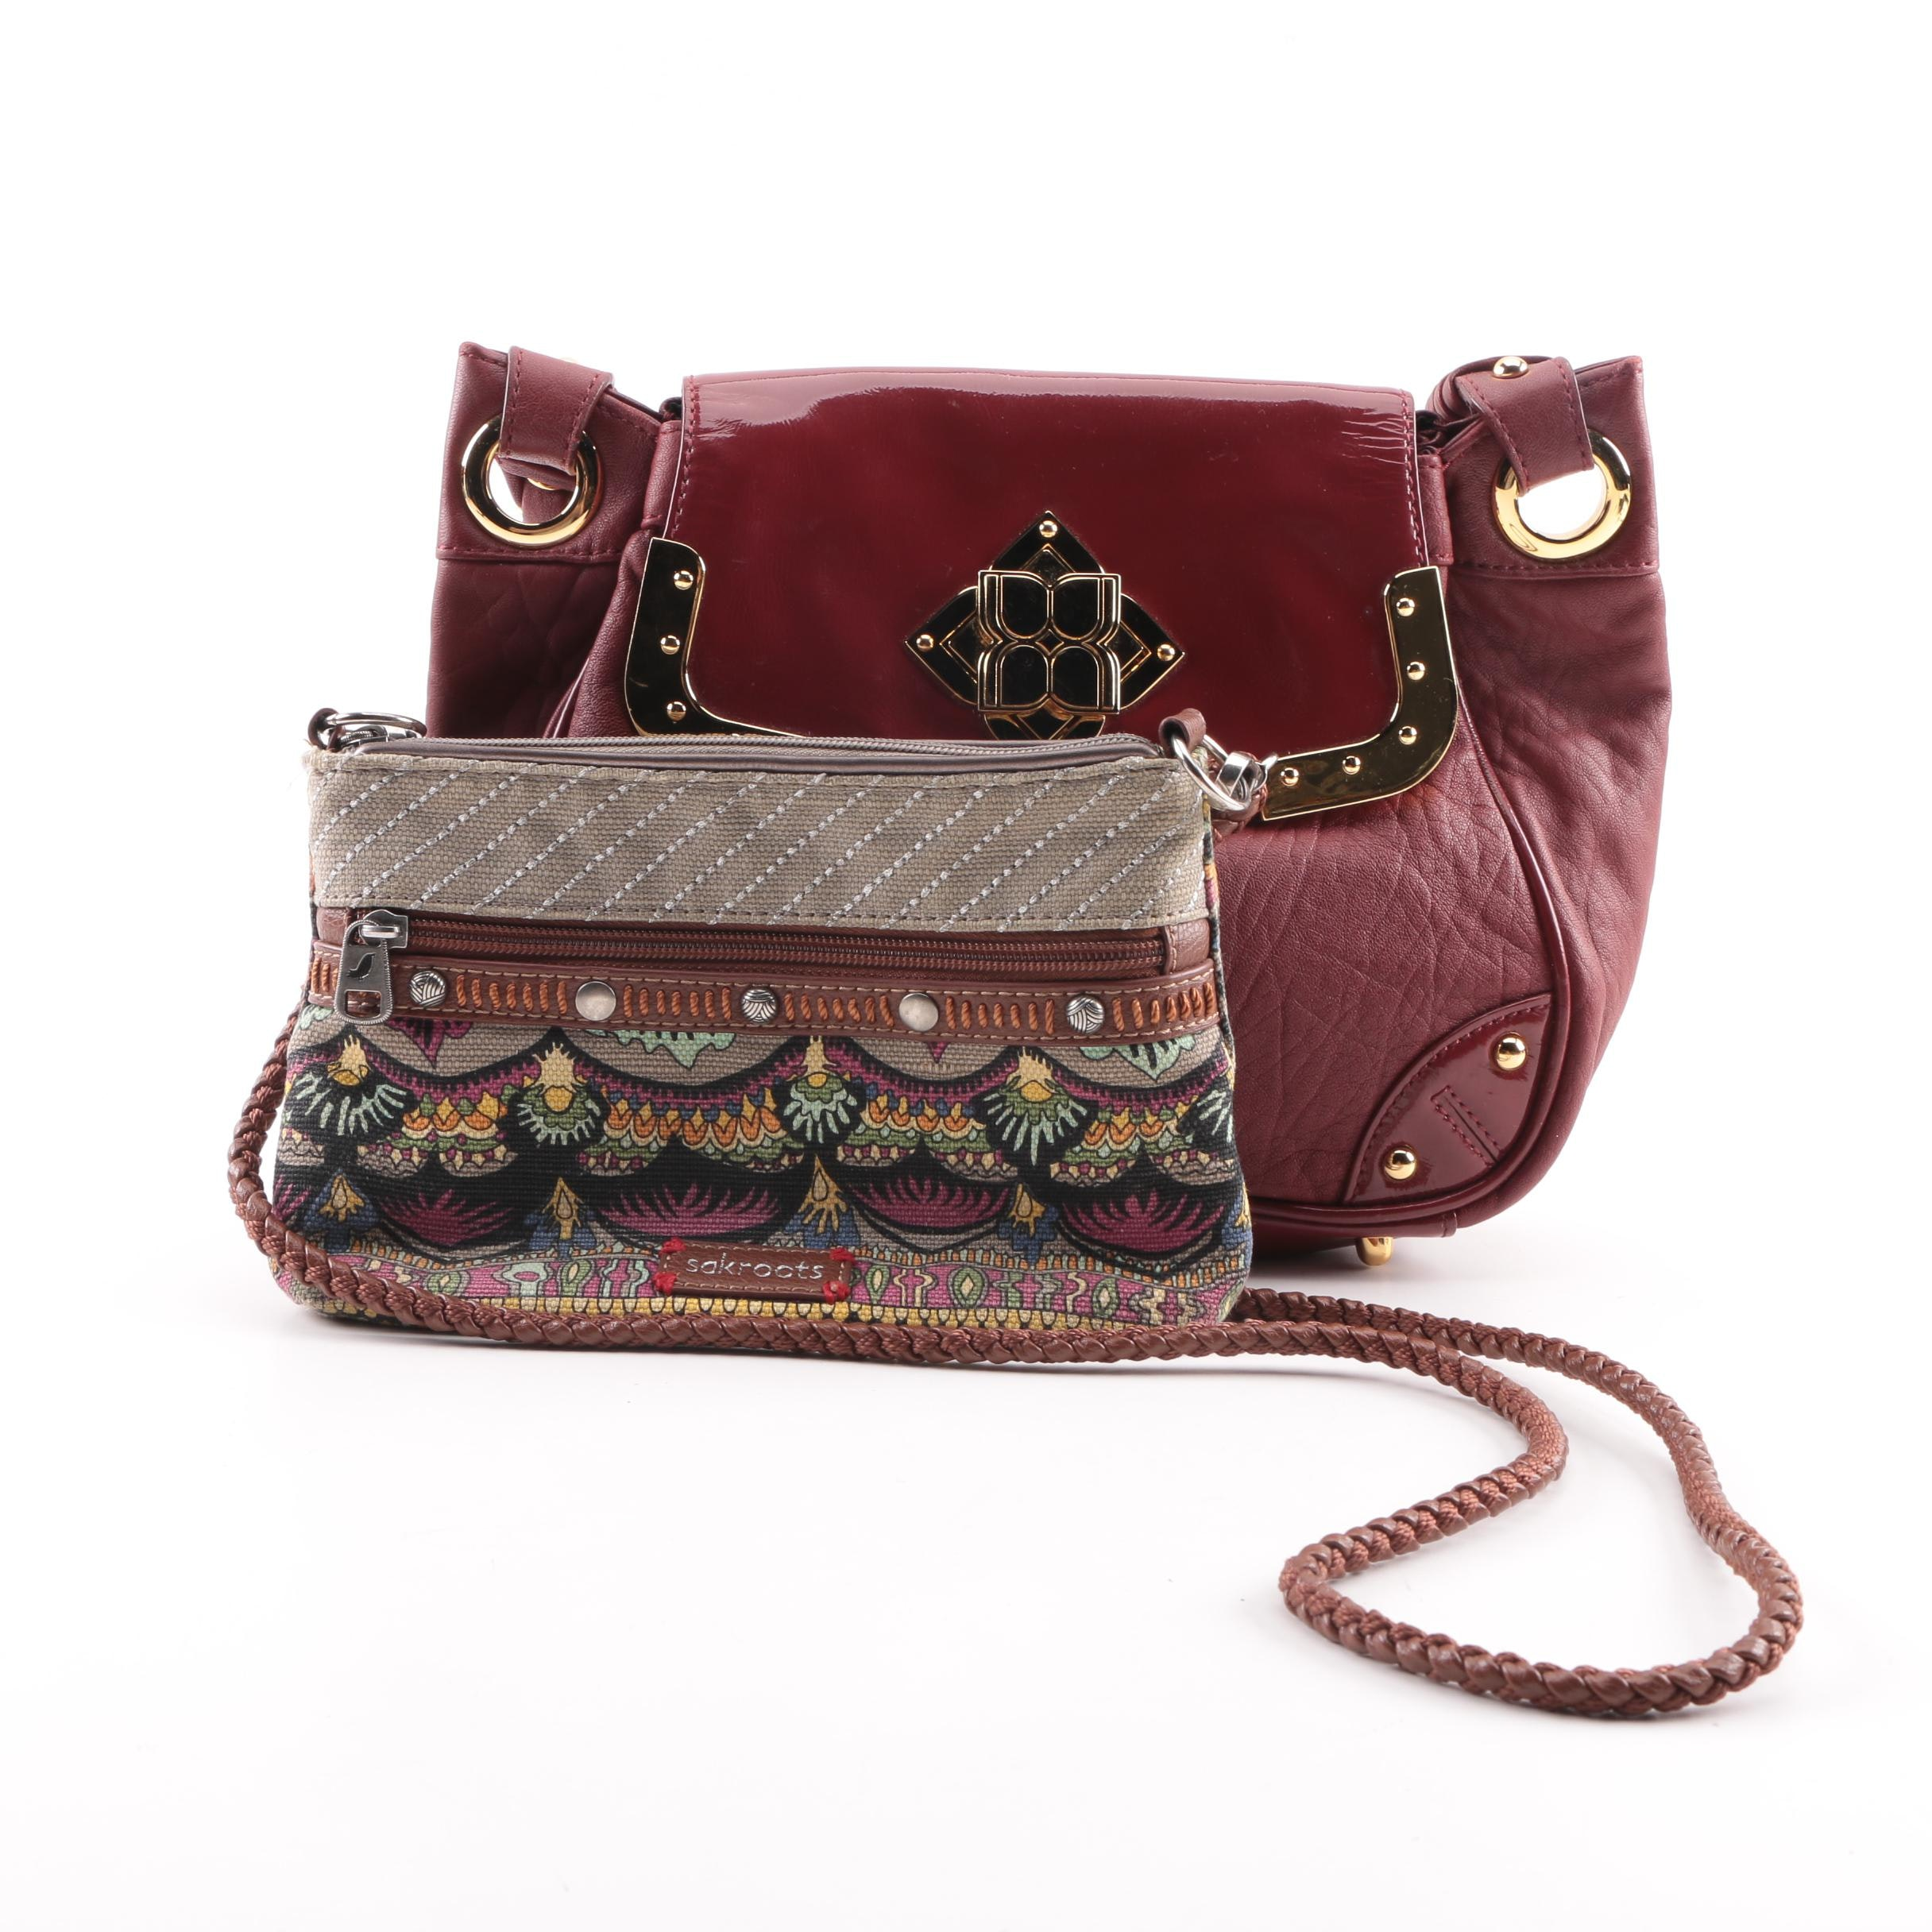 BCBG Max Azaria and Sakroots Handbags